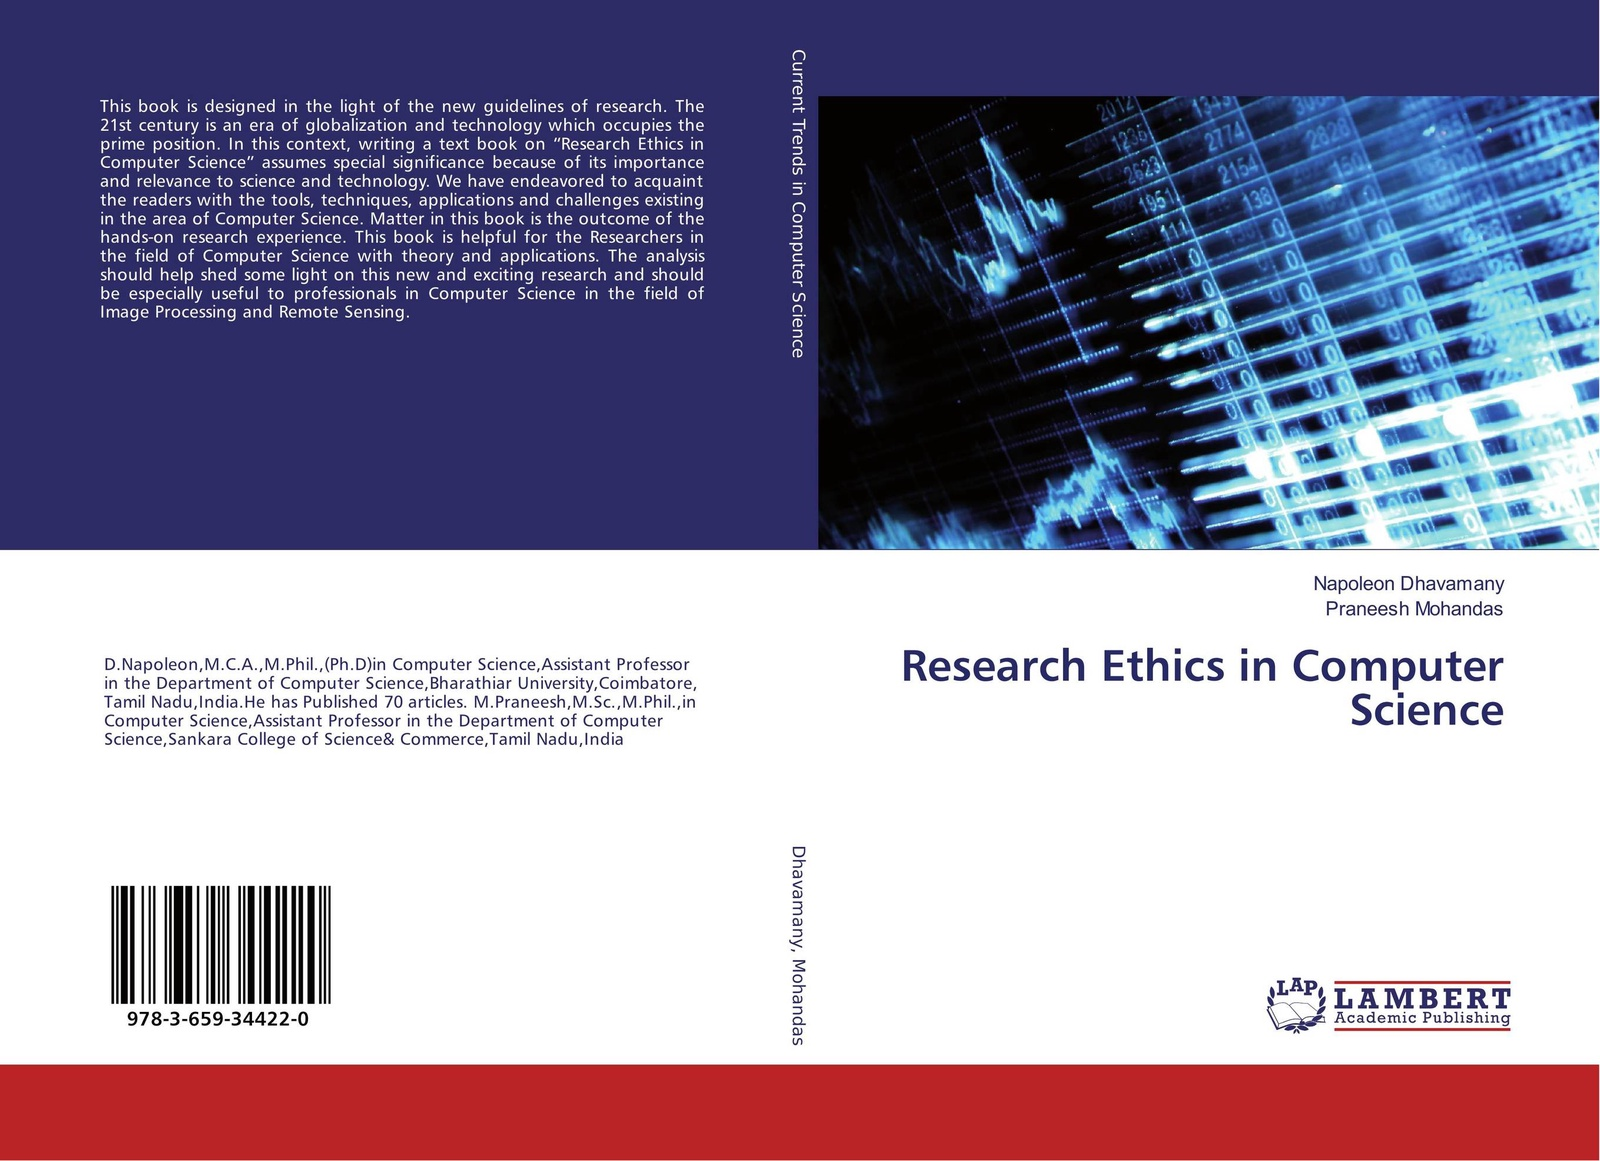 Napoleon Dhavamany and Praneesh Mohandas Research Ethics in Computer Science paul wood j river science research and management for the 21st century